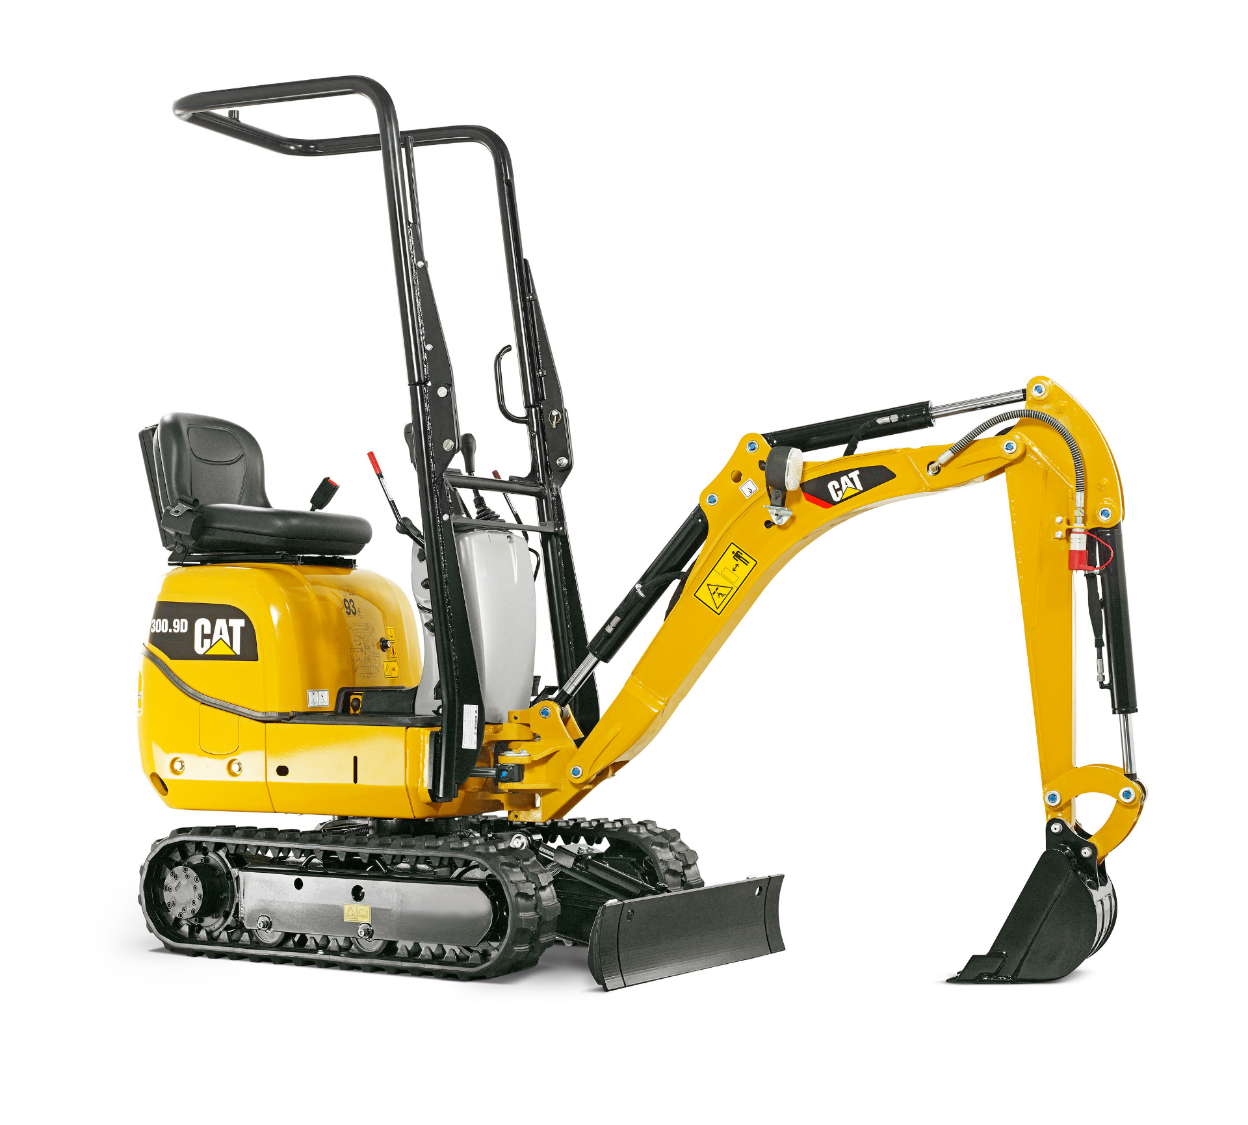 CAt 300.9 mini gravemaskine